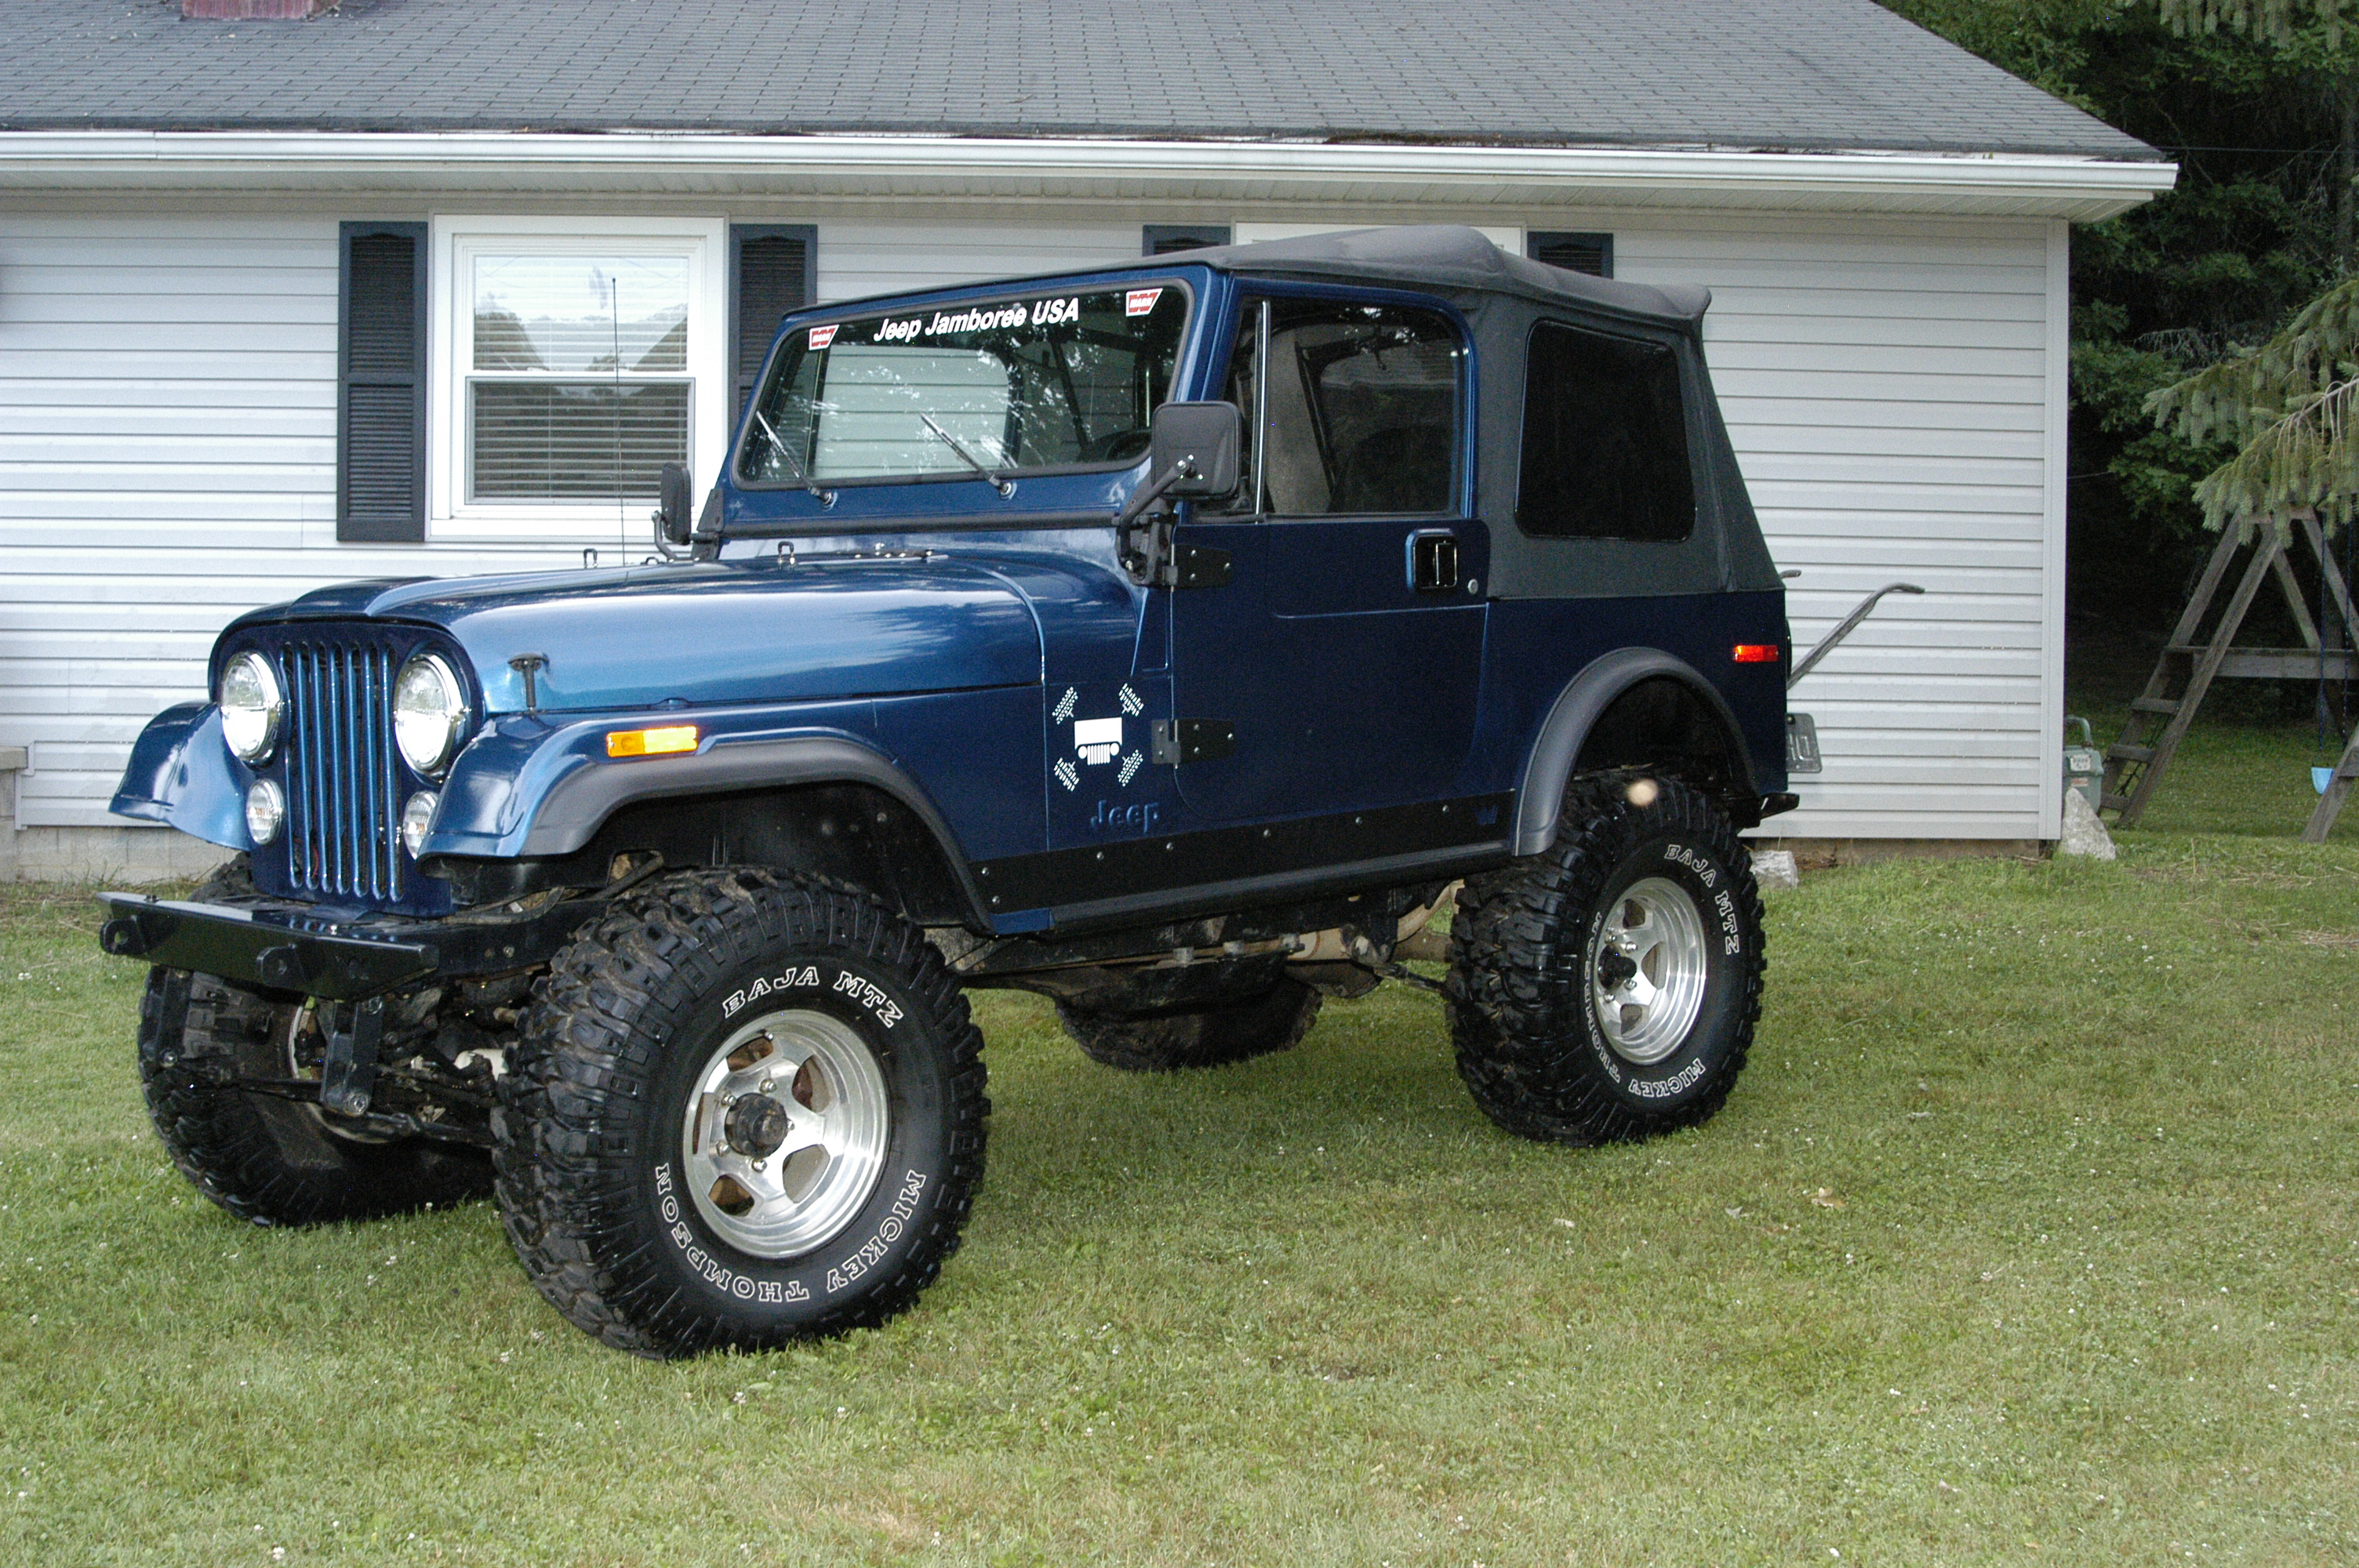 sold window cj item size vehicle april auction new full sale jeep in for renegade